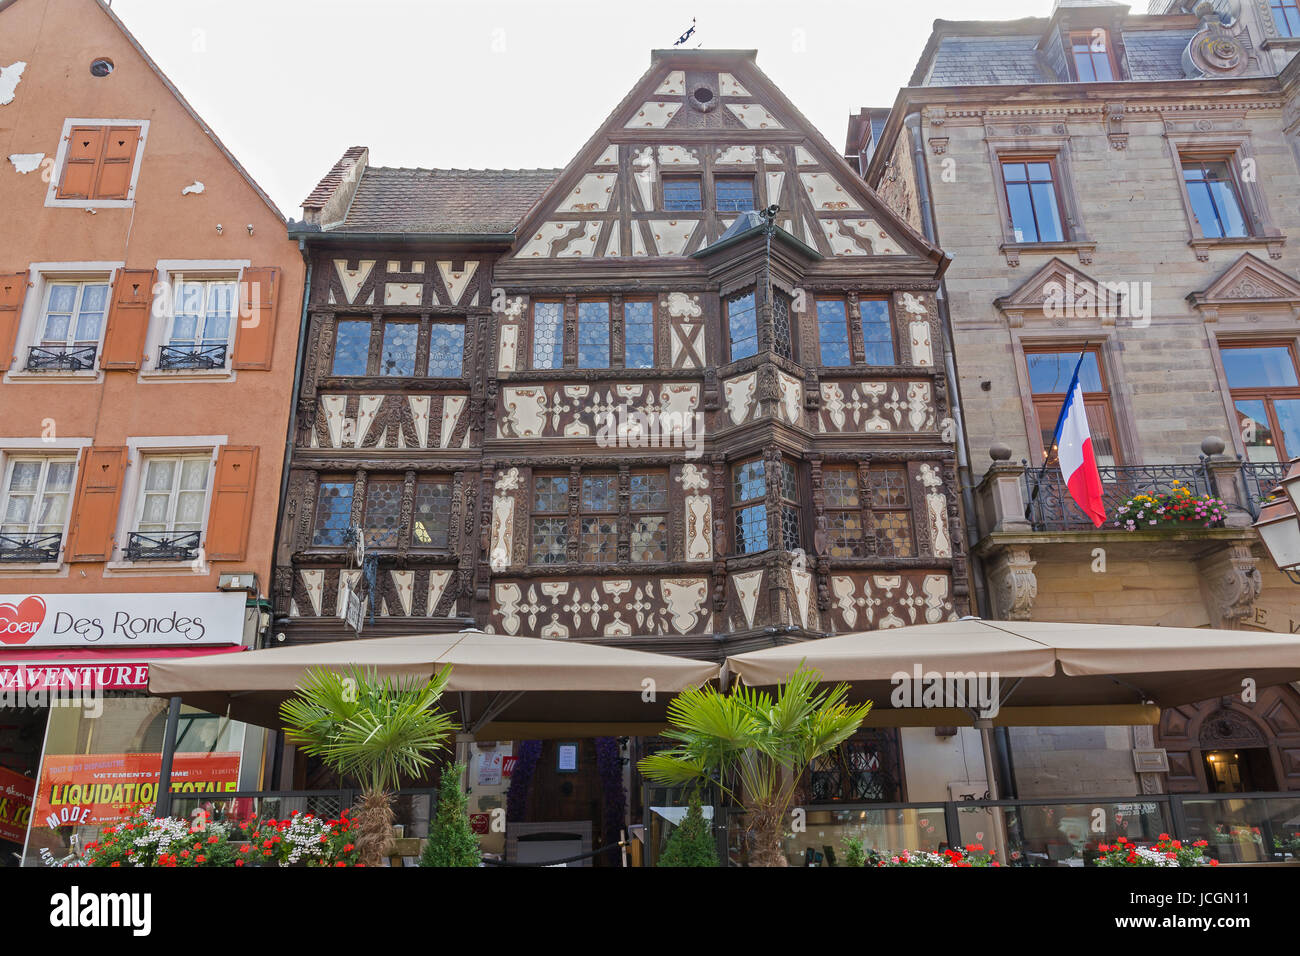 Maison Katz house from 17th Century (Taverne Katz), Saverne, Alsace, France. Stock Photo